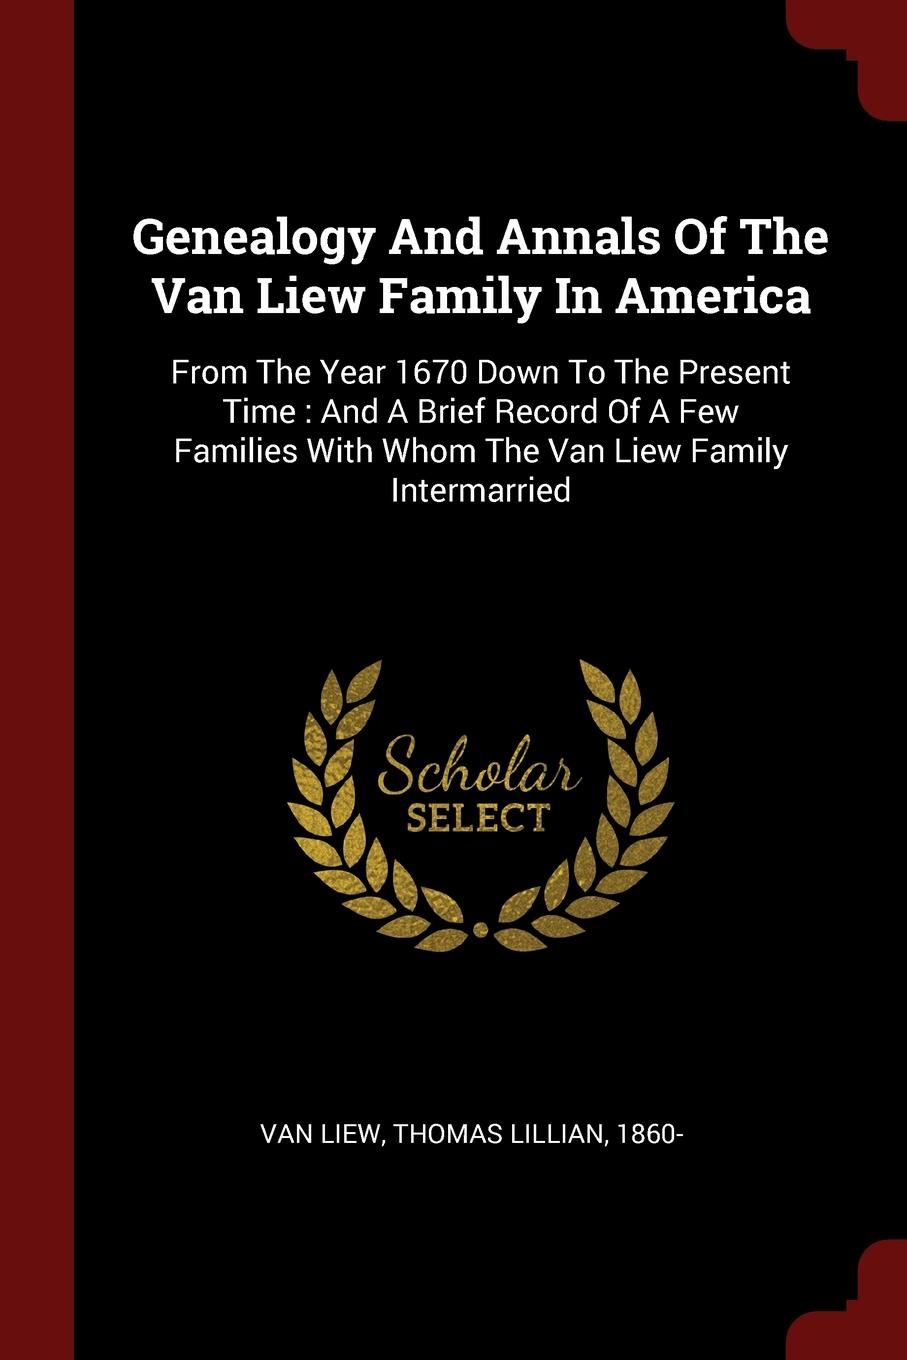 Genealogy And Annals Of The Van Liew Family In America. From The Year 1670 Down To The Present Time : And A Brief Record Of A Few Families With Whom The Van Liew Family Intermarried